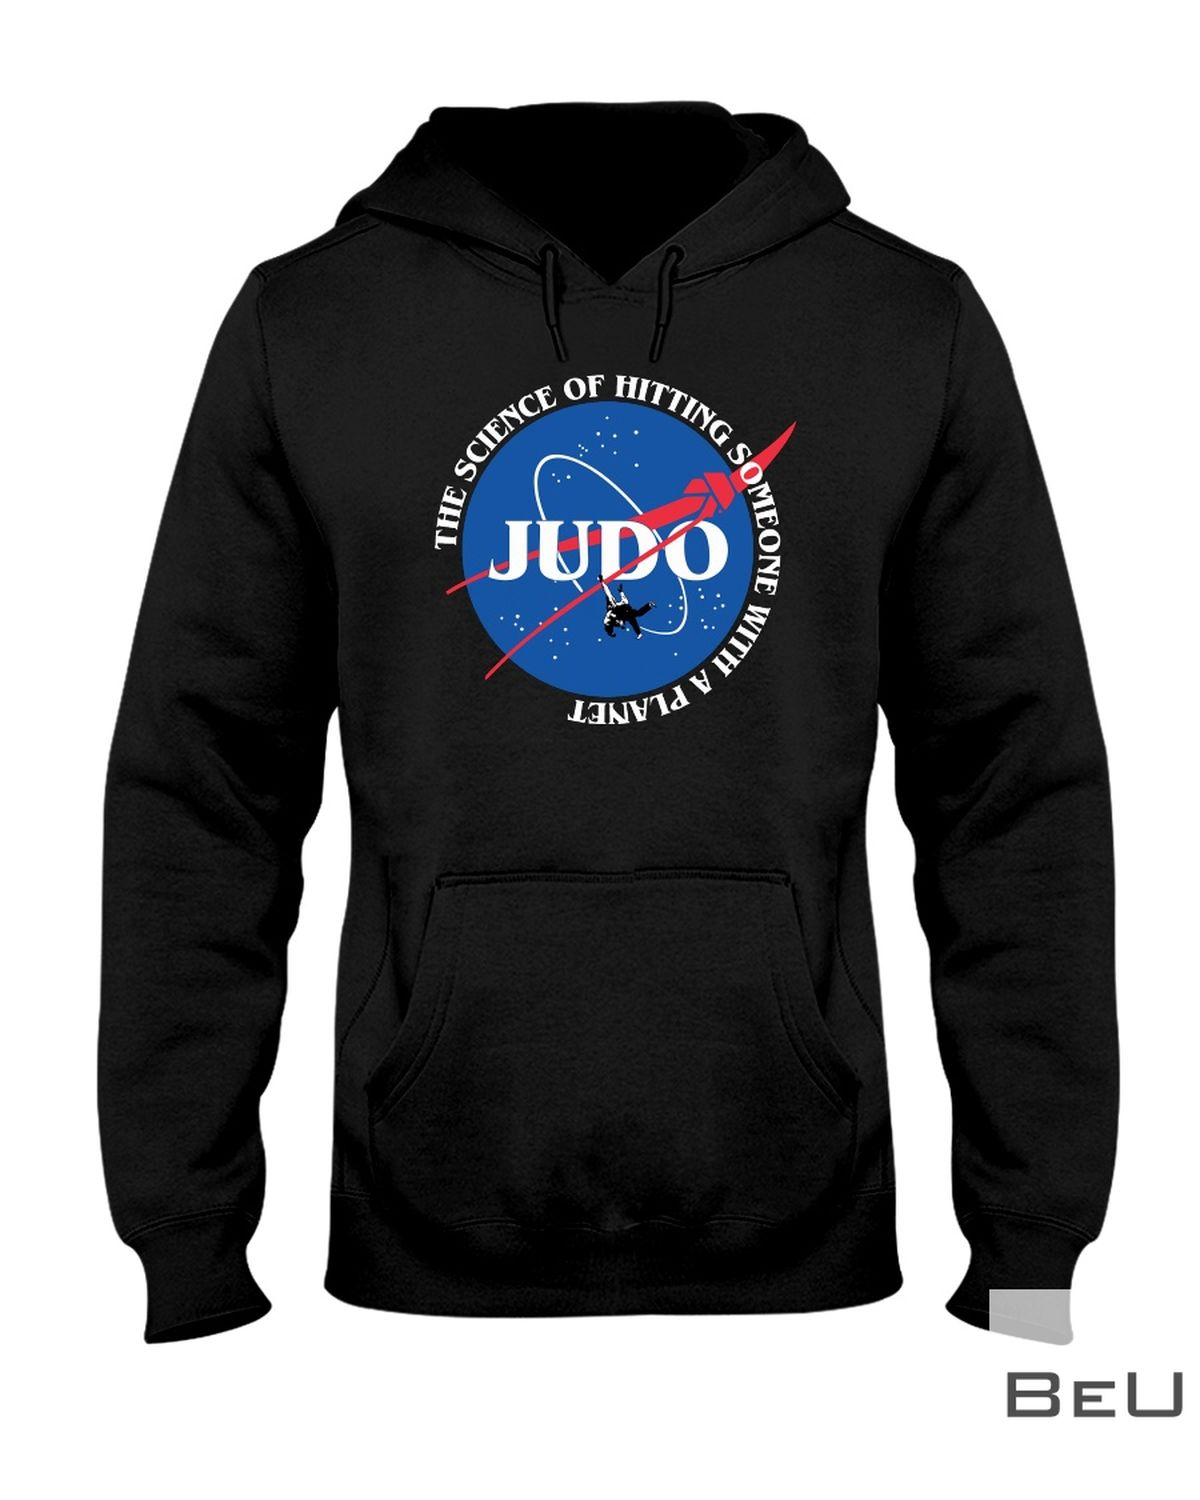 Judo The Science Of Hitting Someone With A Planet Classic Shirtx